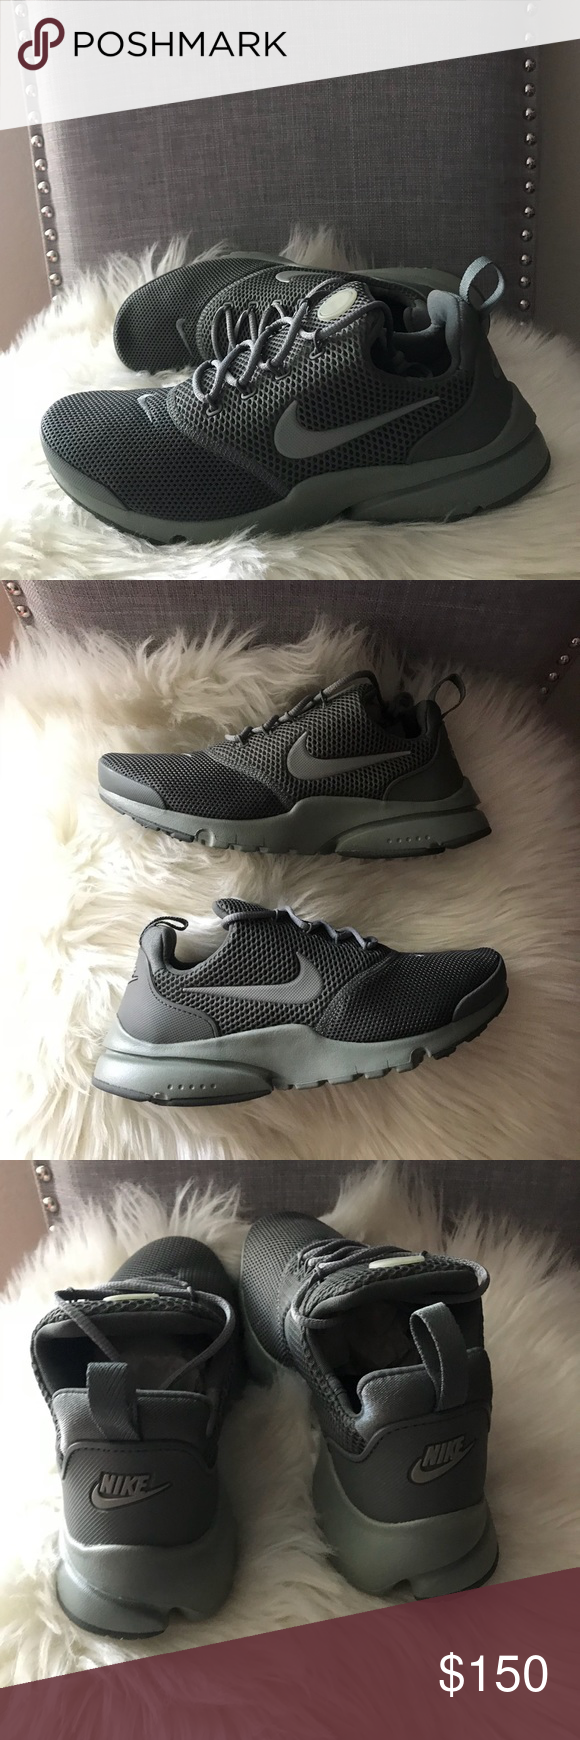 f5067caa0ab NIKE PRESTO FLY OLIVE GREEN WOMENS SHOES NWT Brand new without box. Size 6  youth